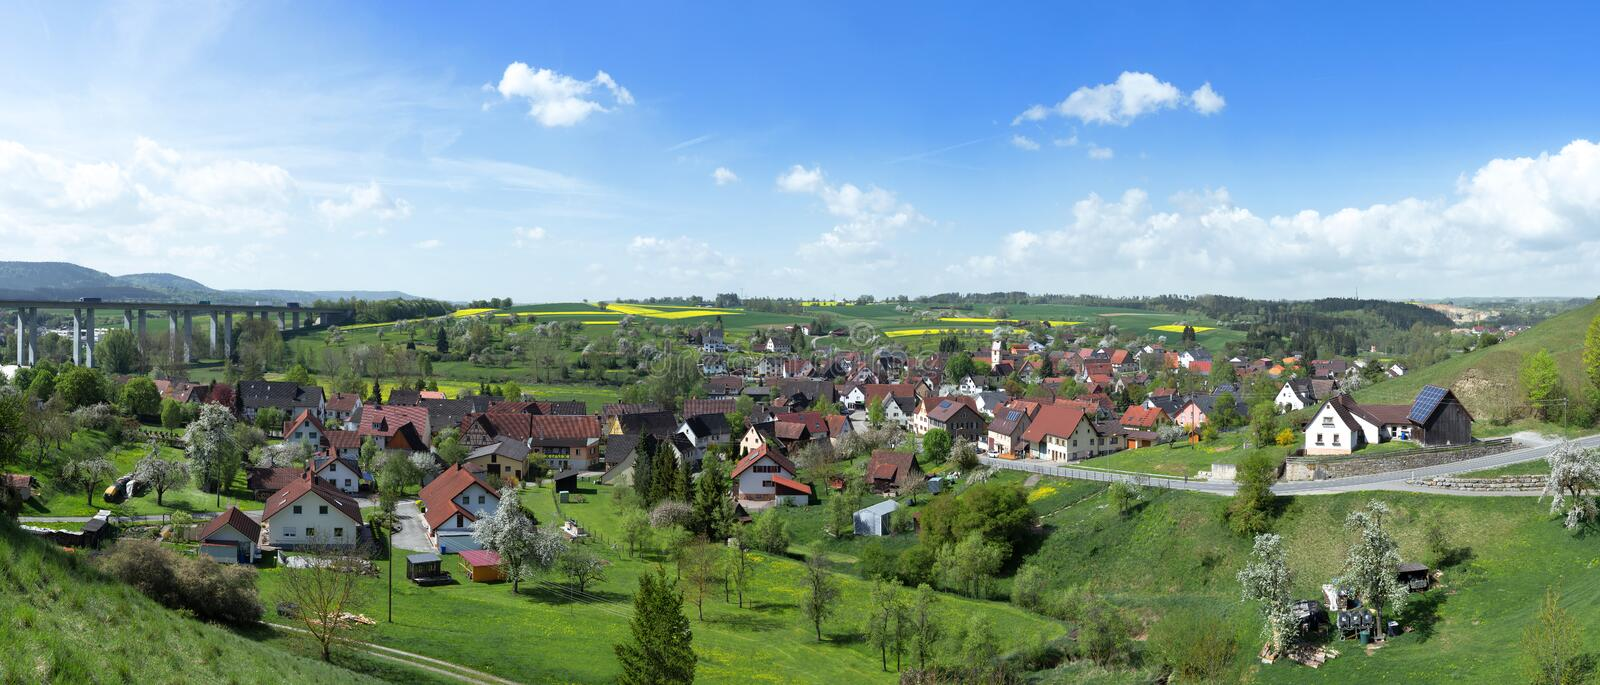 Sulz-Muehlheim, Germany in spring. Panorama of Sulz-Muehlheim in spring, on the left the motorway A81 with the Muehlbachtalbruecke, Baden-Wuerttemberg, Germany stock image